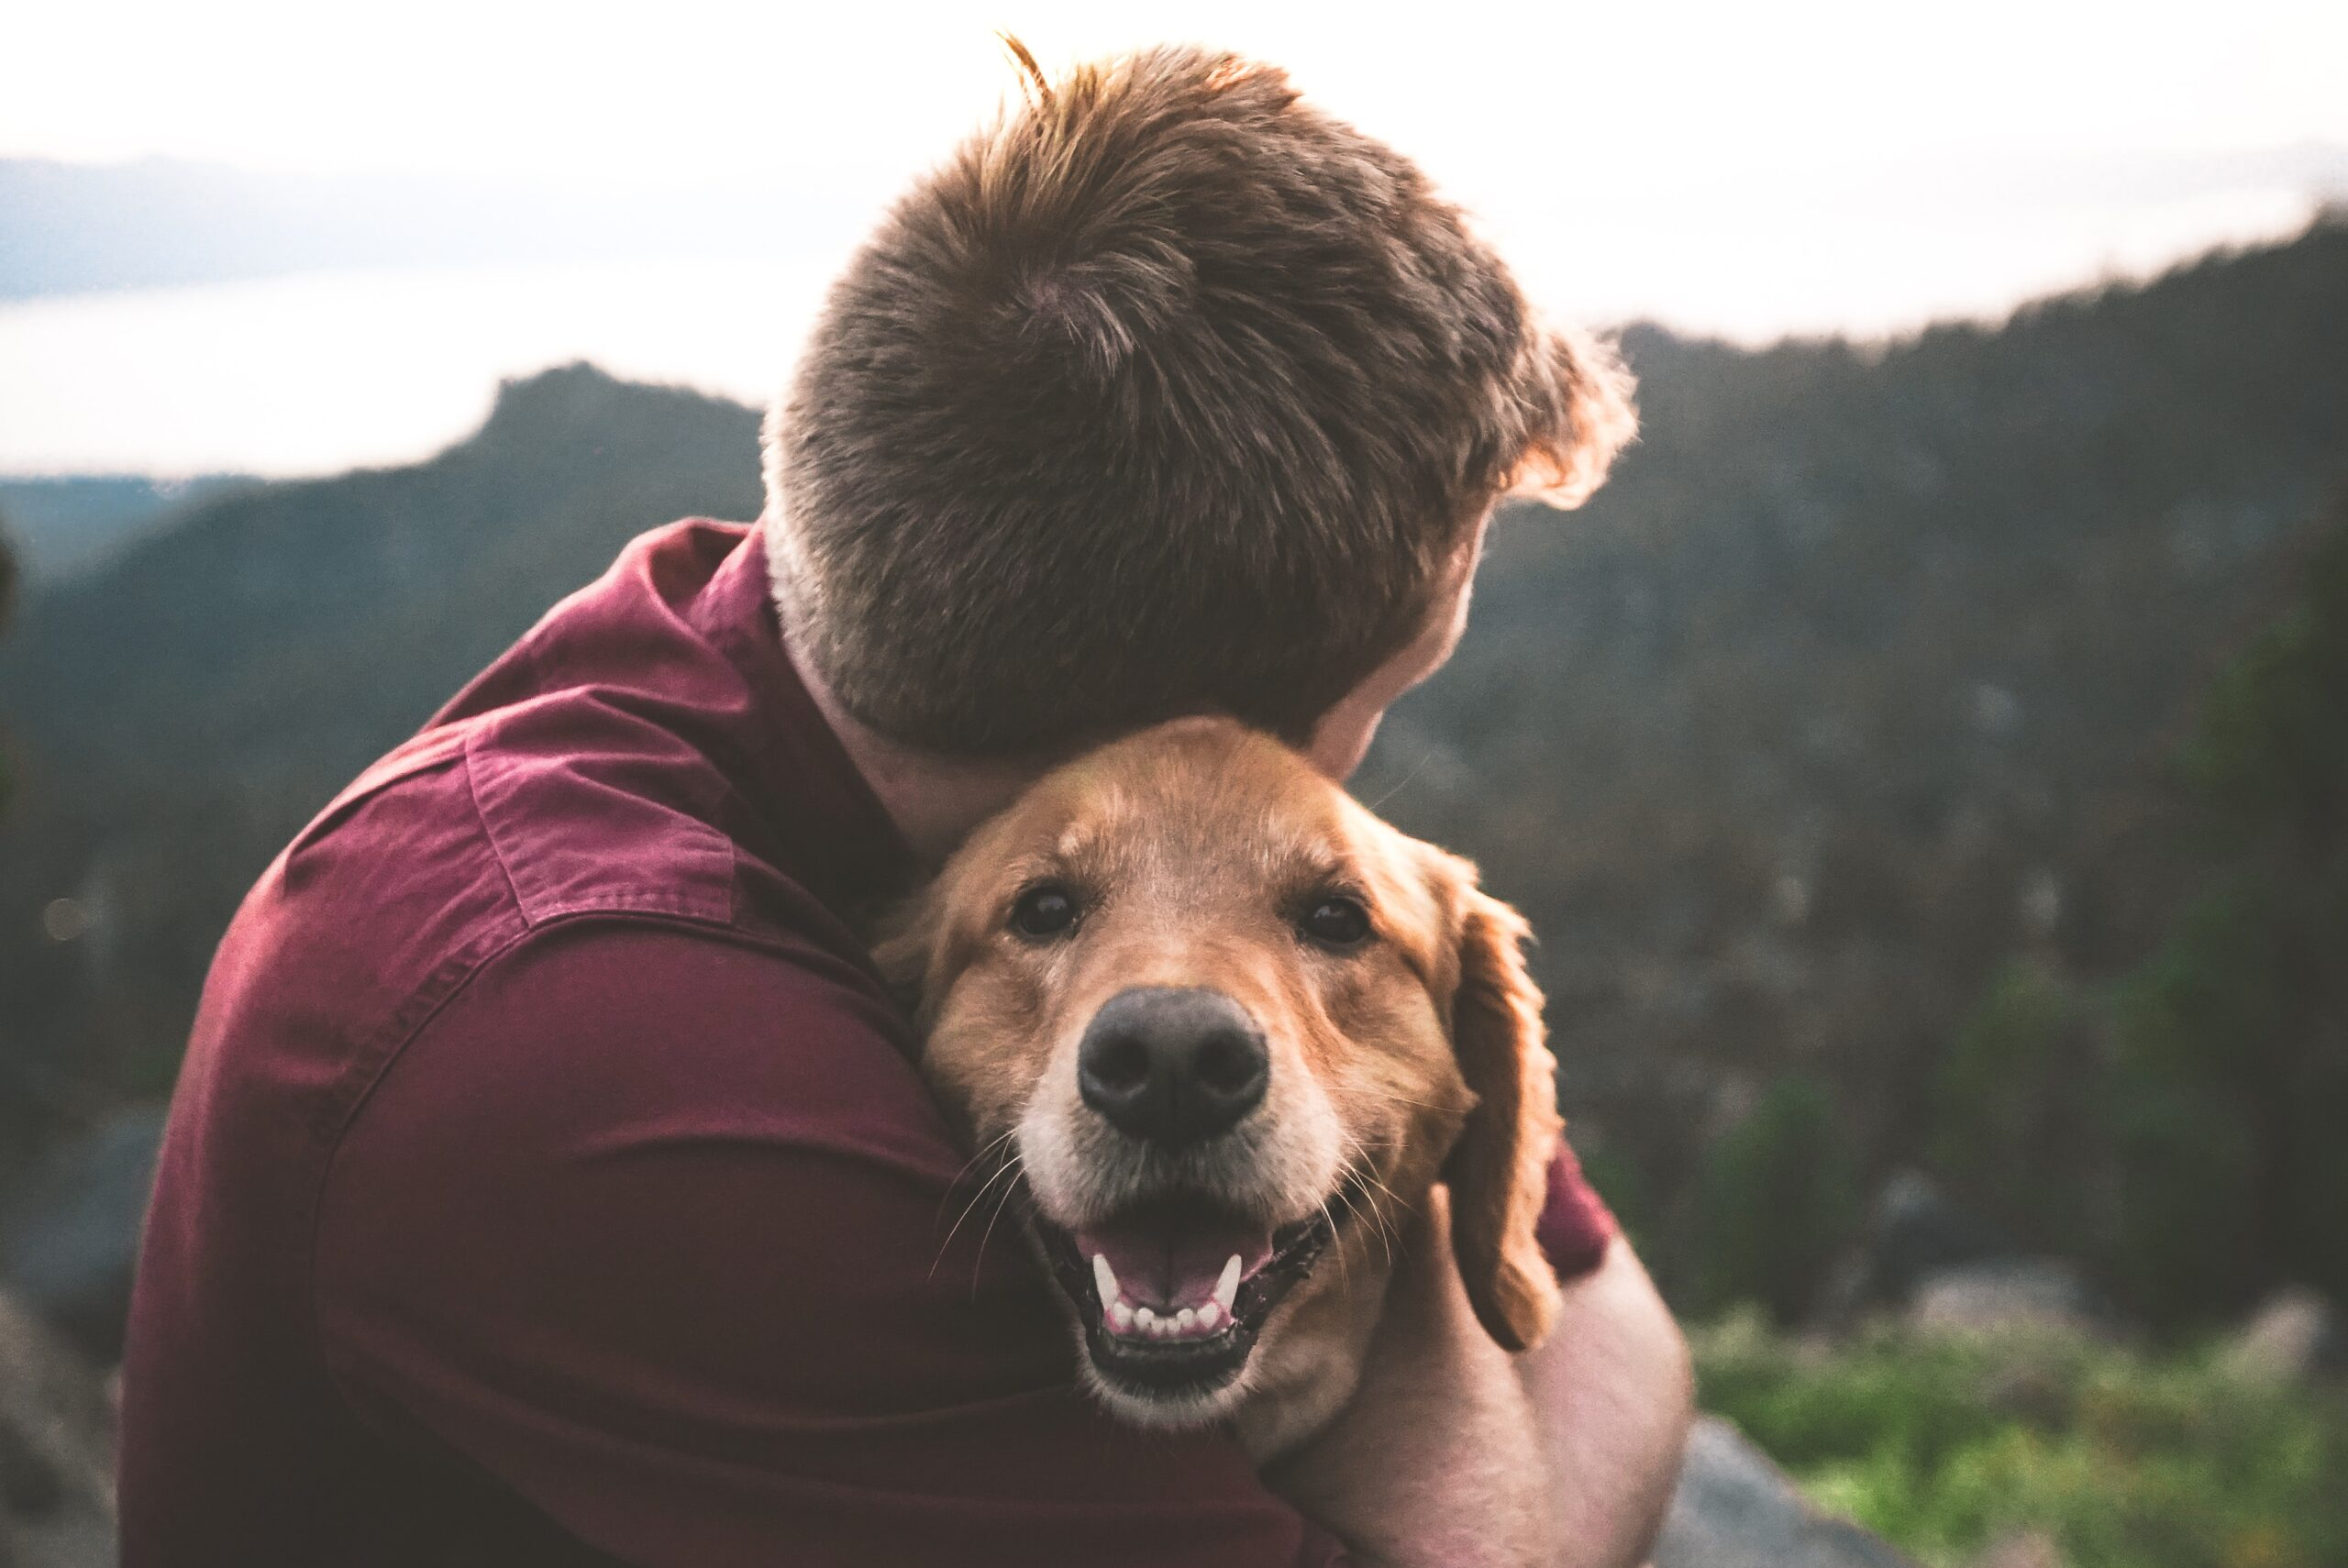 Losing Man's Best Friend: Overcoming Grief After The Death Of A Pet